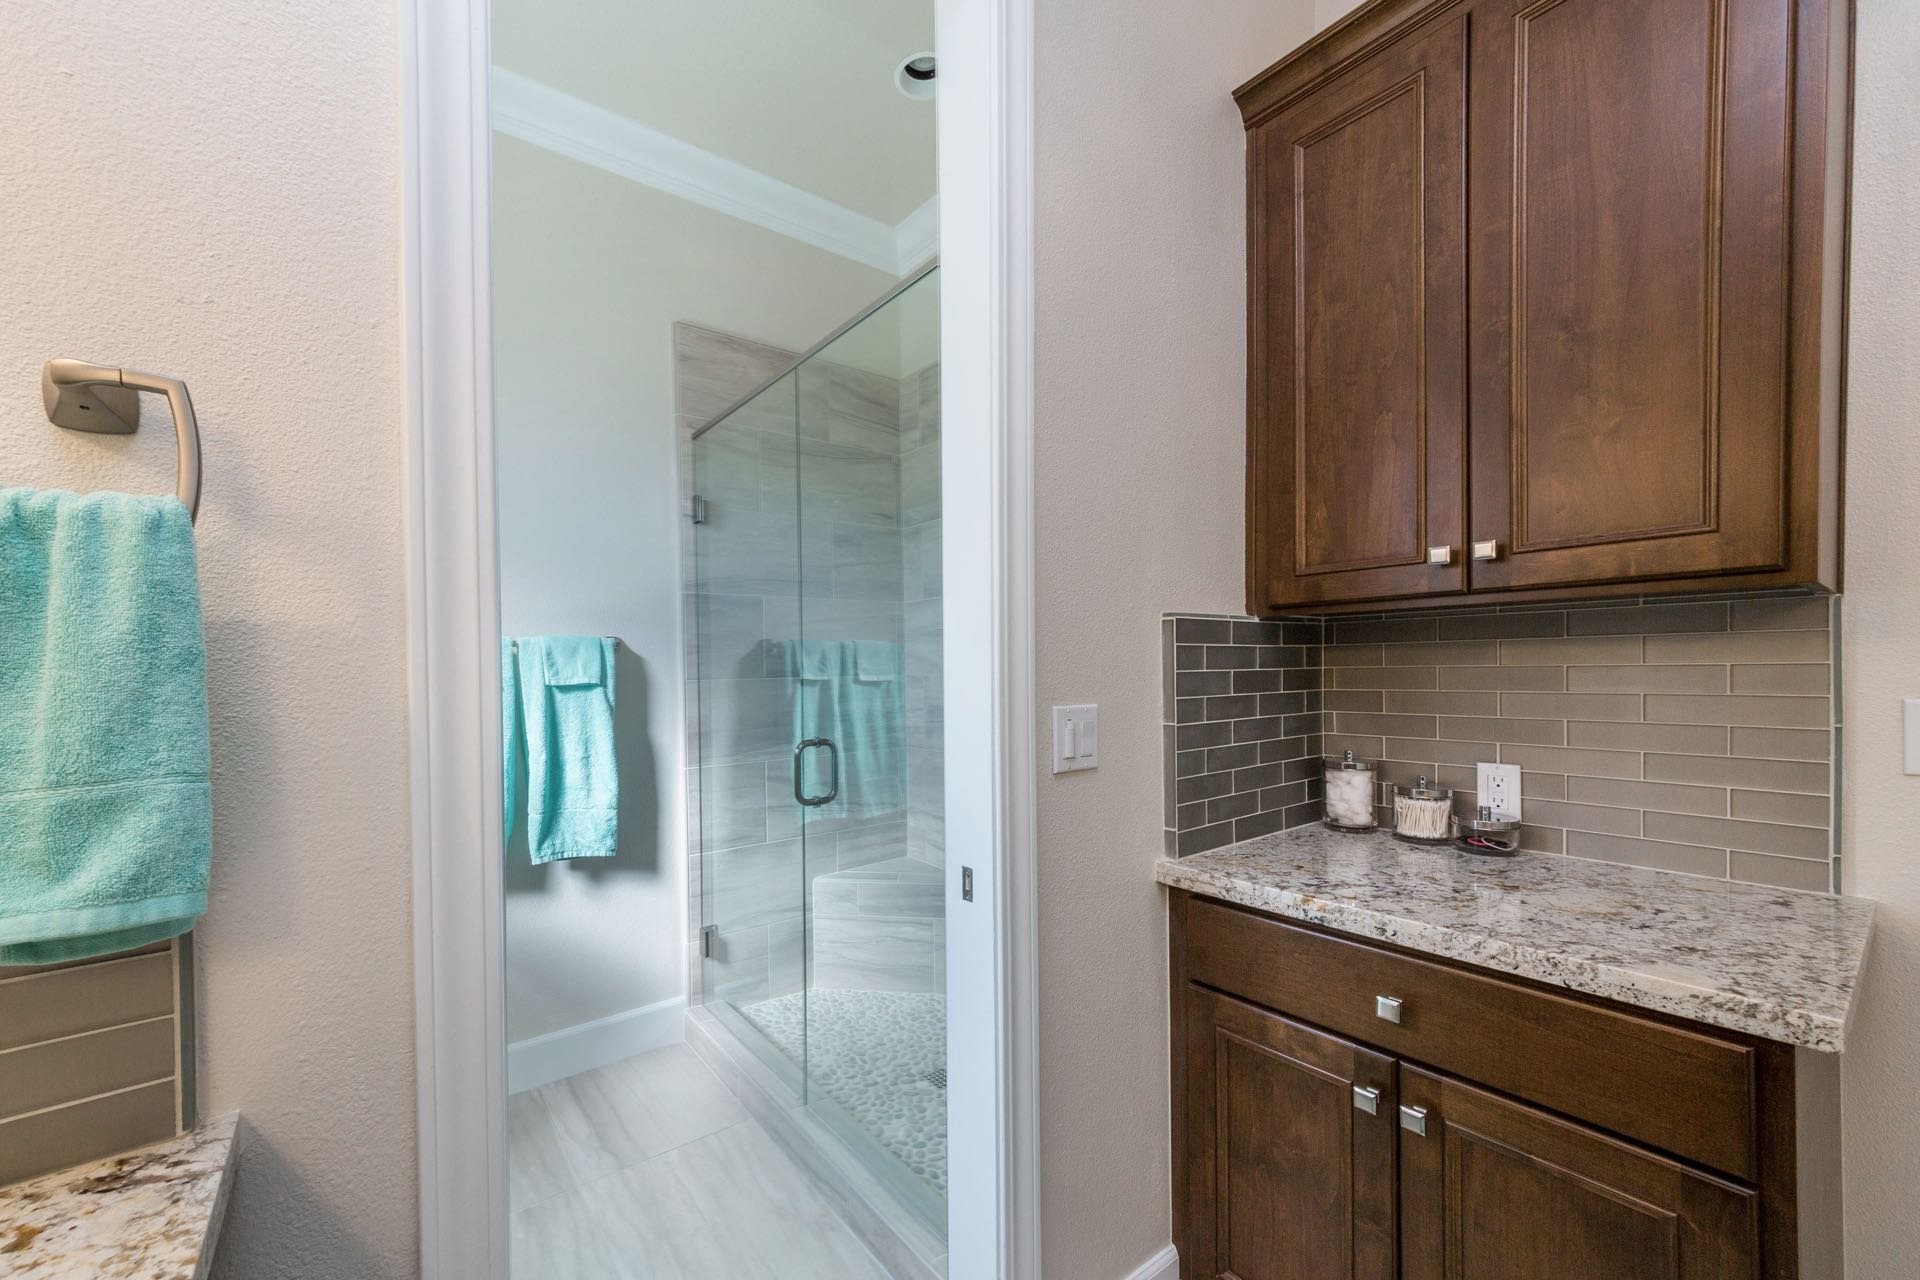 Home Remodeling Project Gallery | Imagine Remodeling